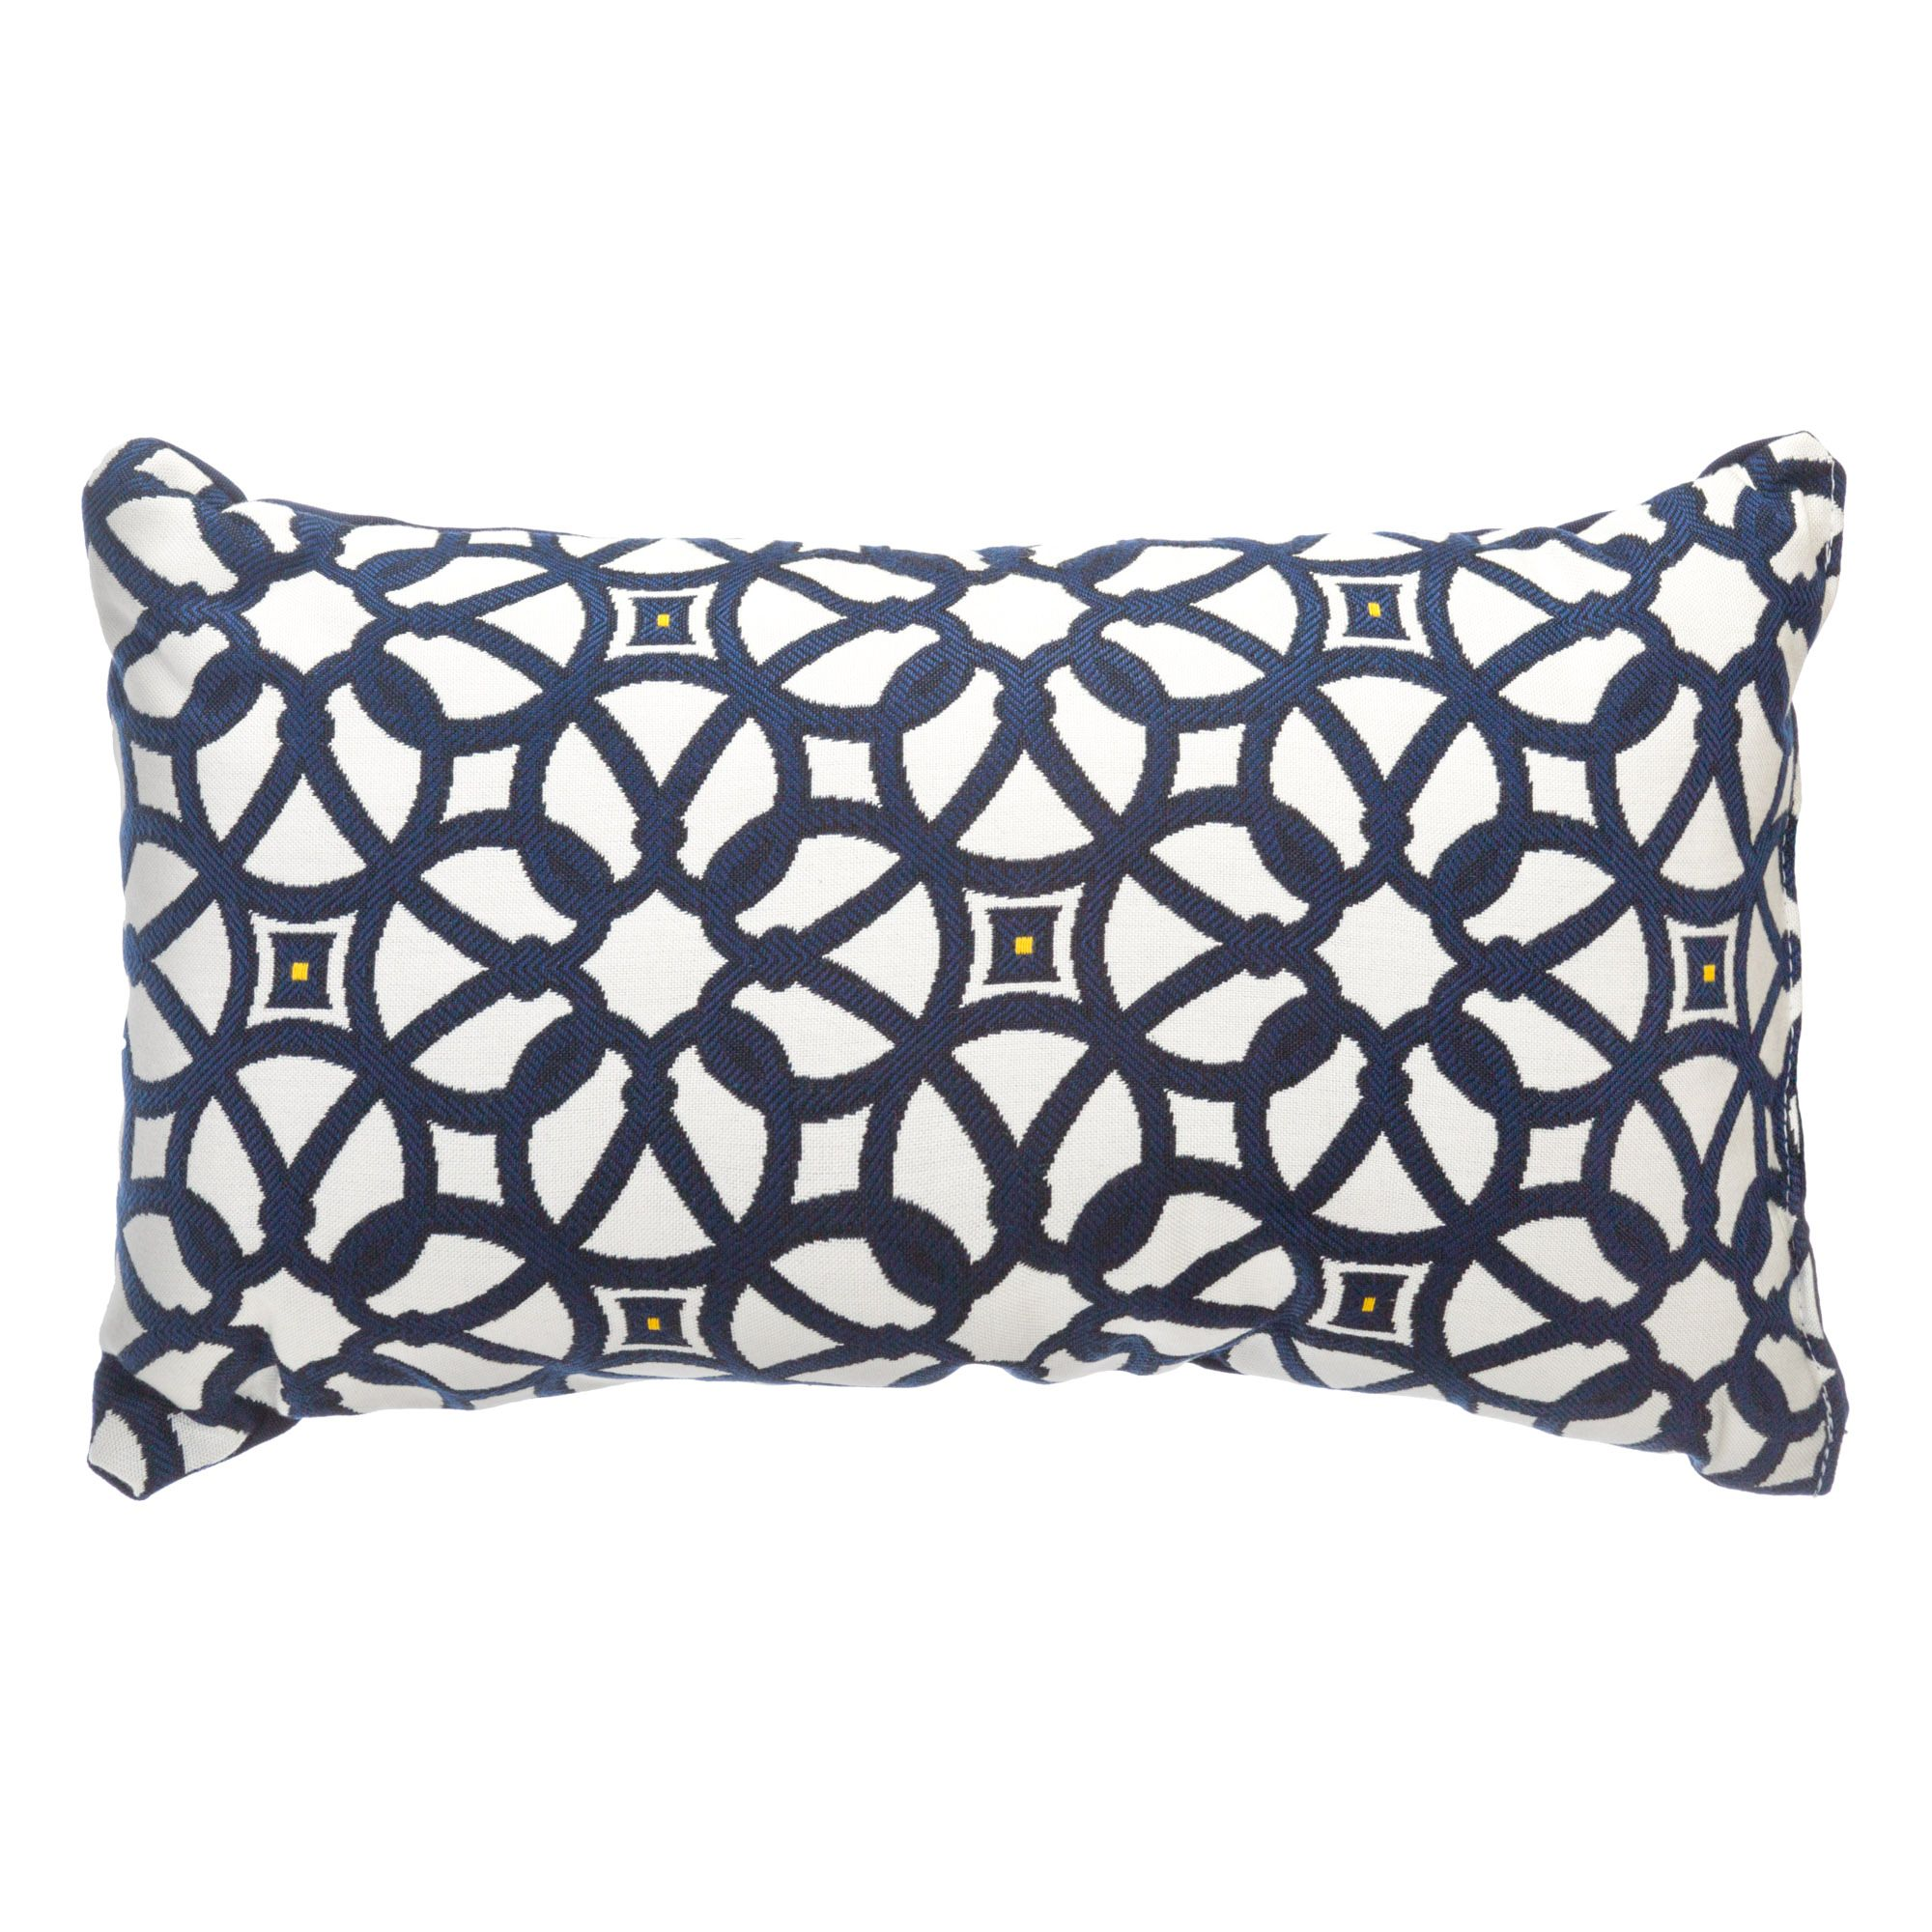 luxe indigo sunbrella designer porch pillow - Sunbrella Pillows